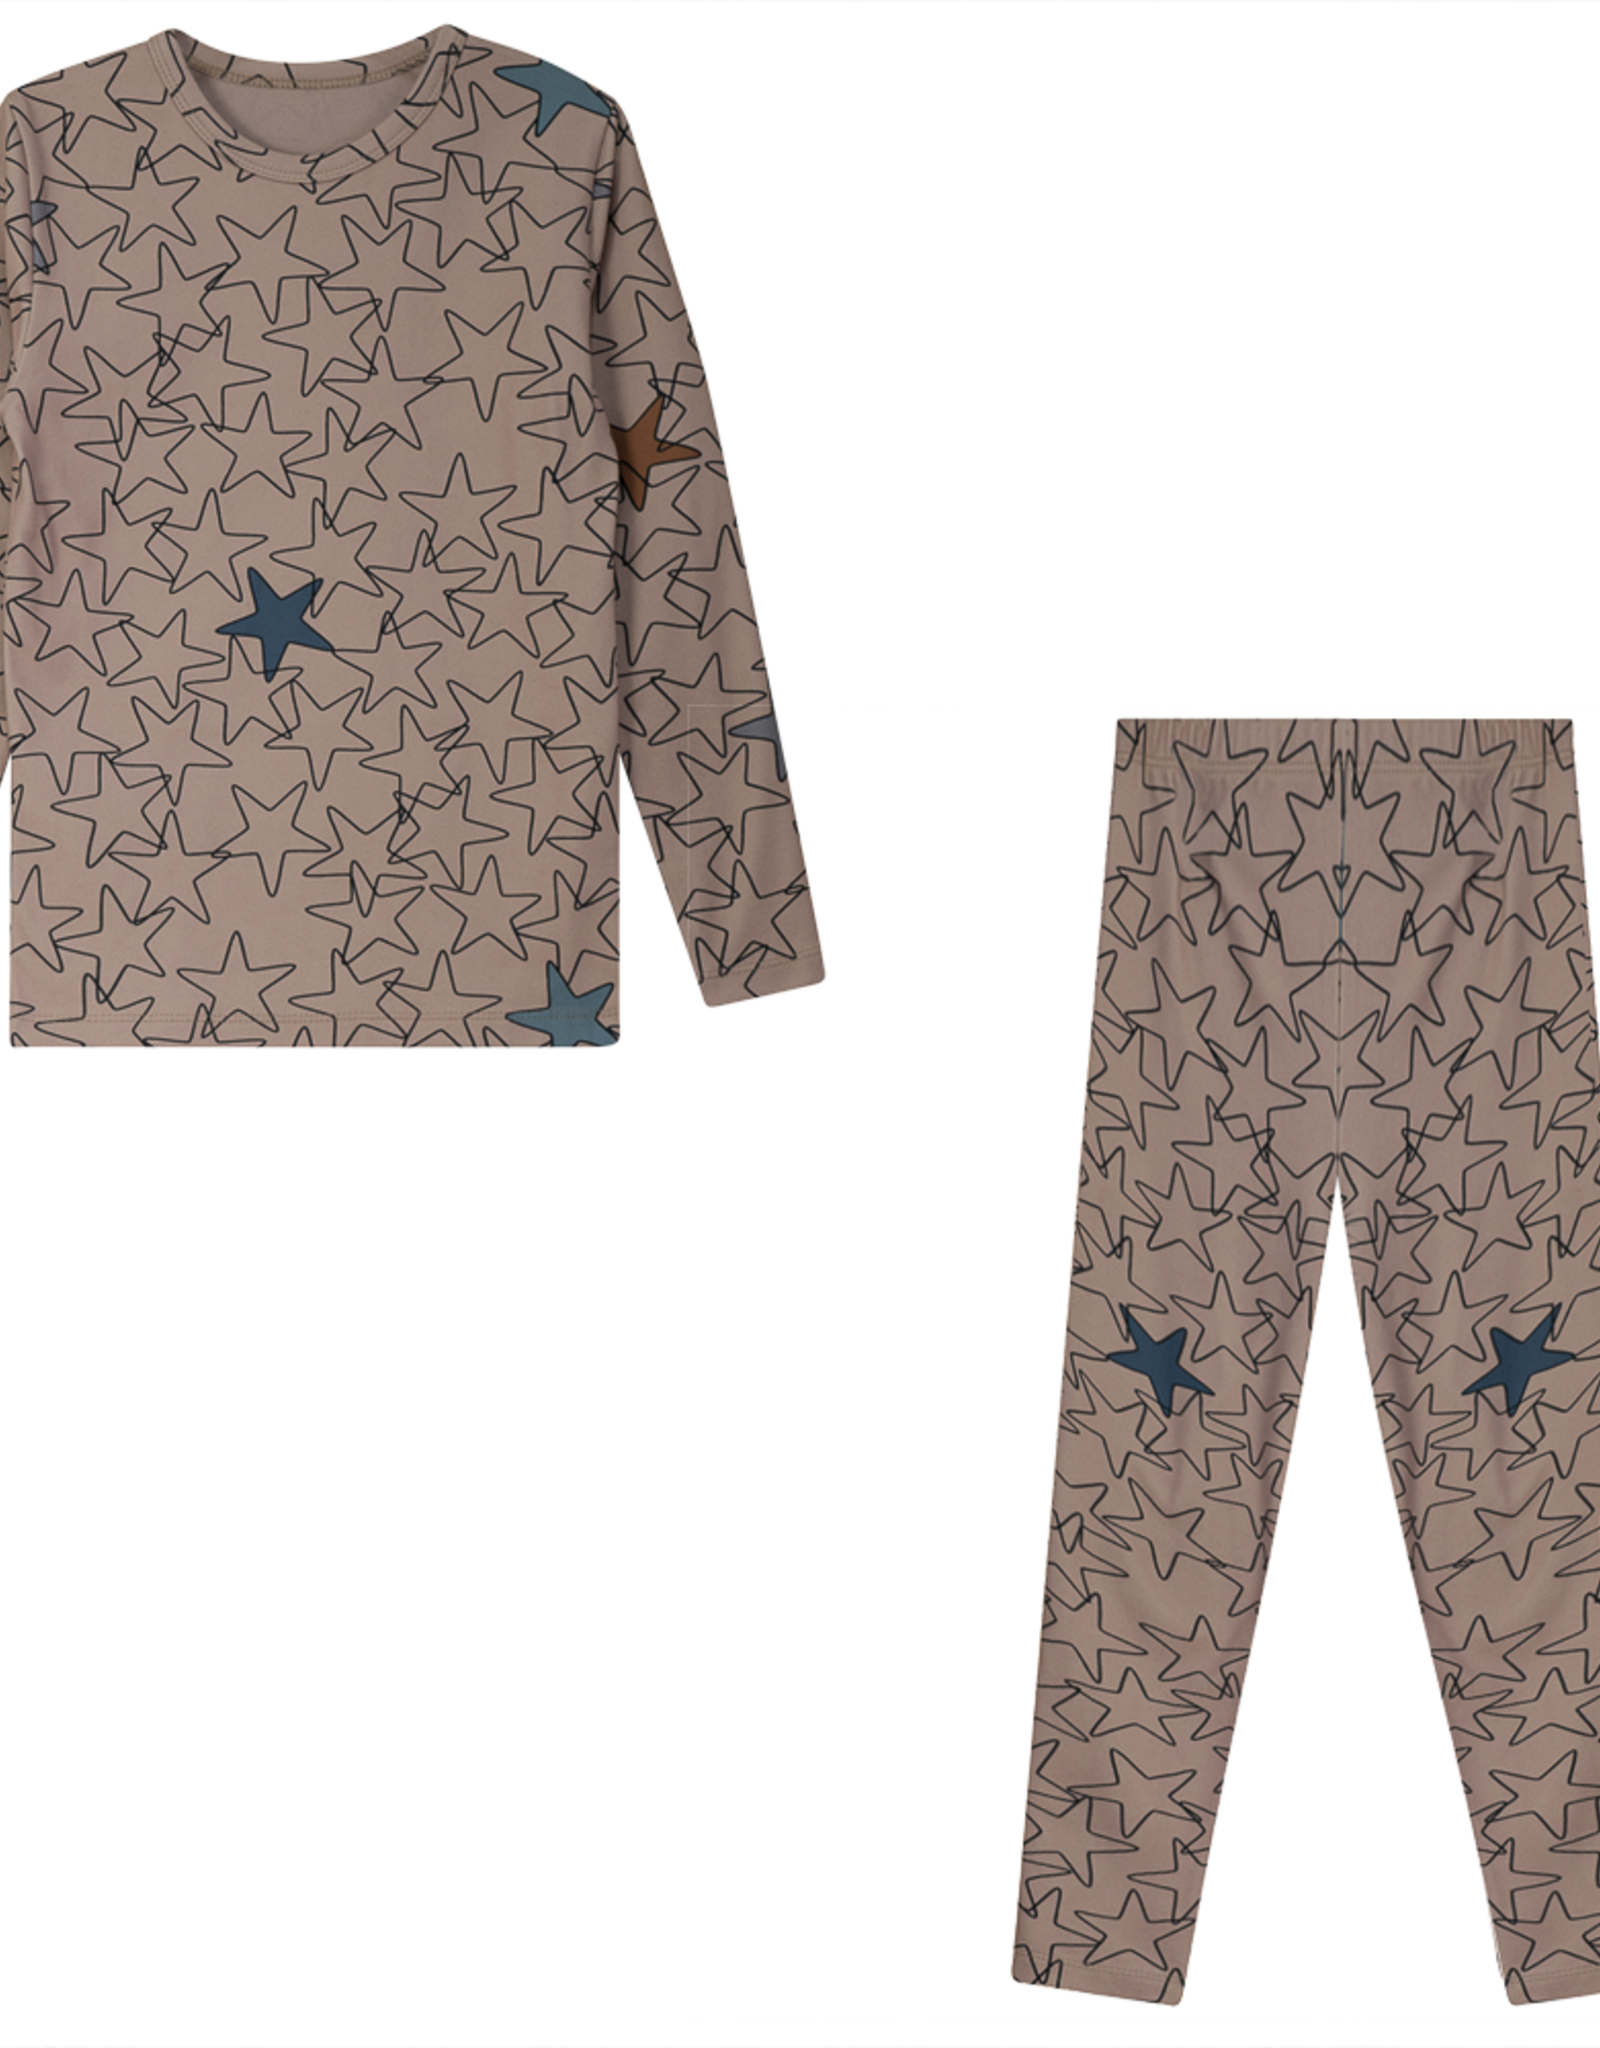 Whipped Cocoa Whipped Cocoa Fleece Pajamas with Star/Heart Print